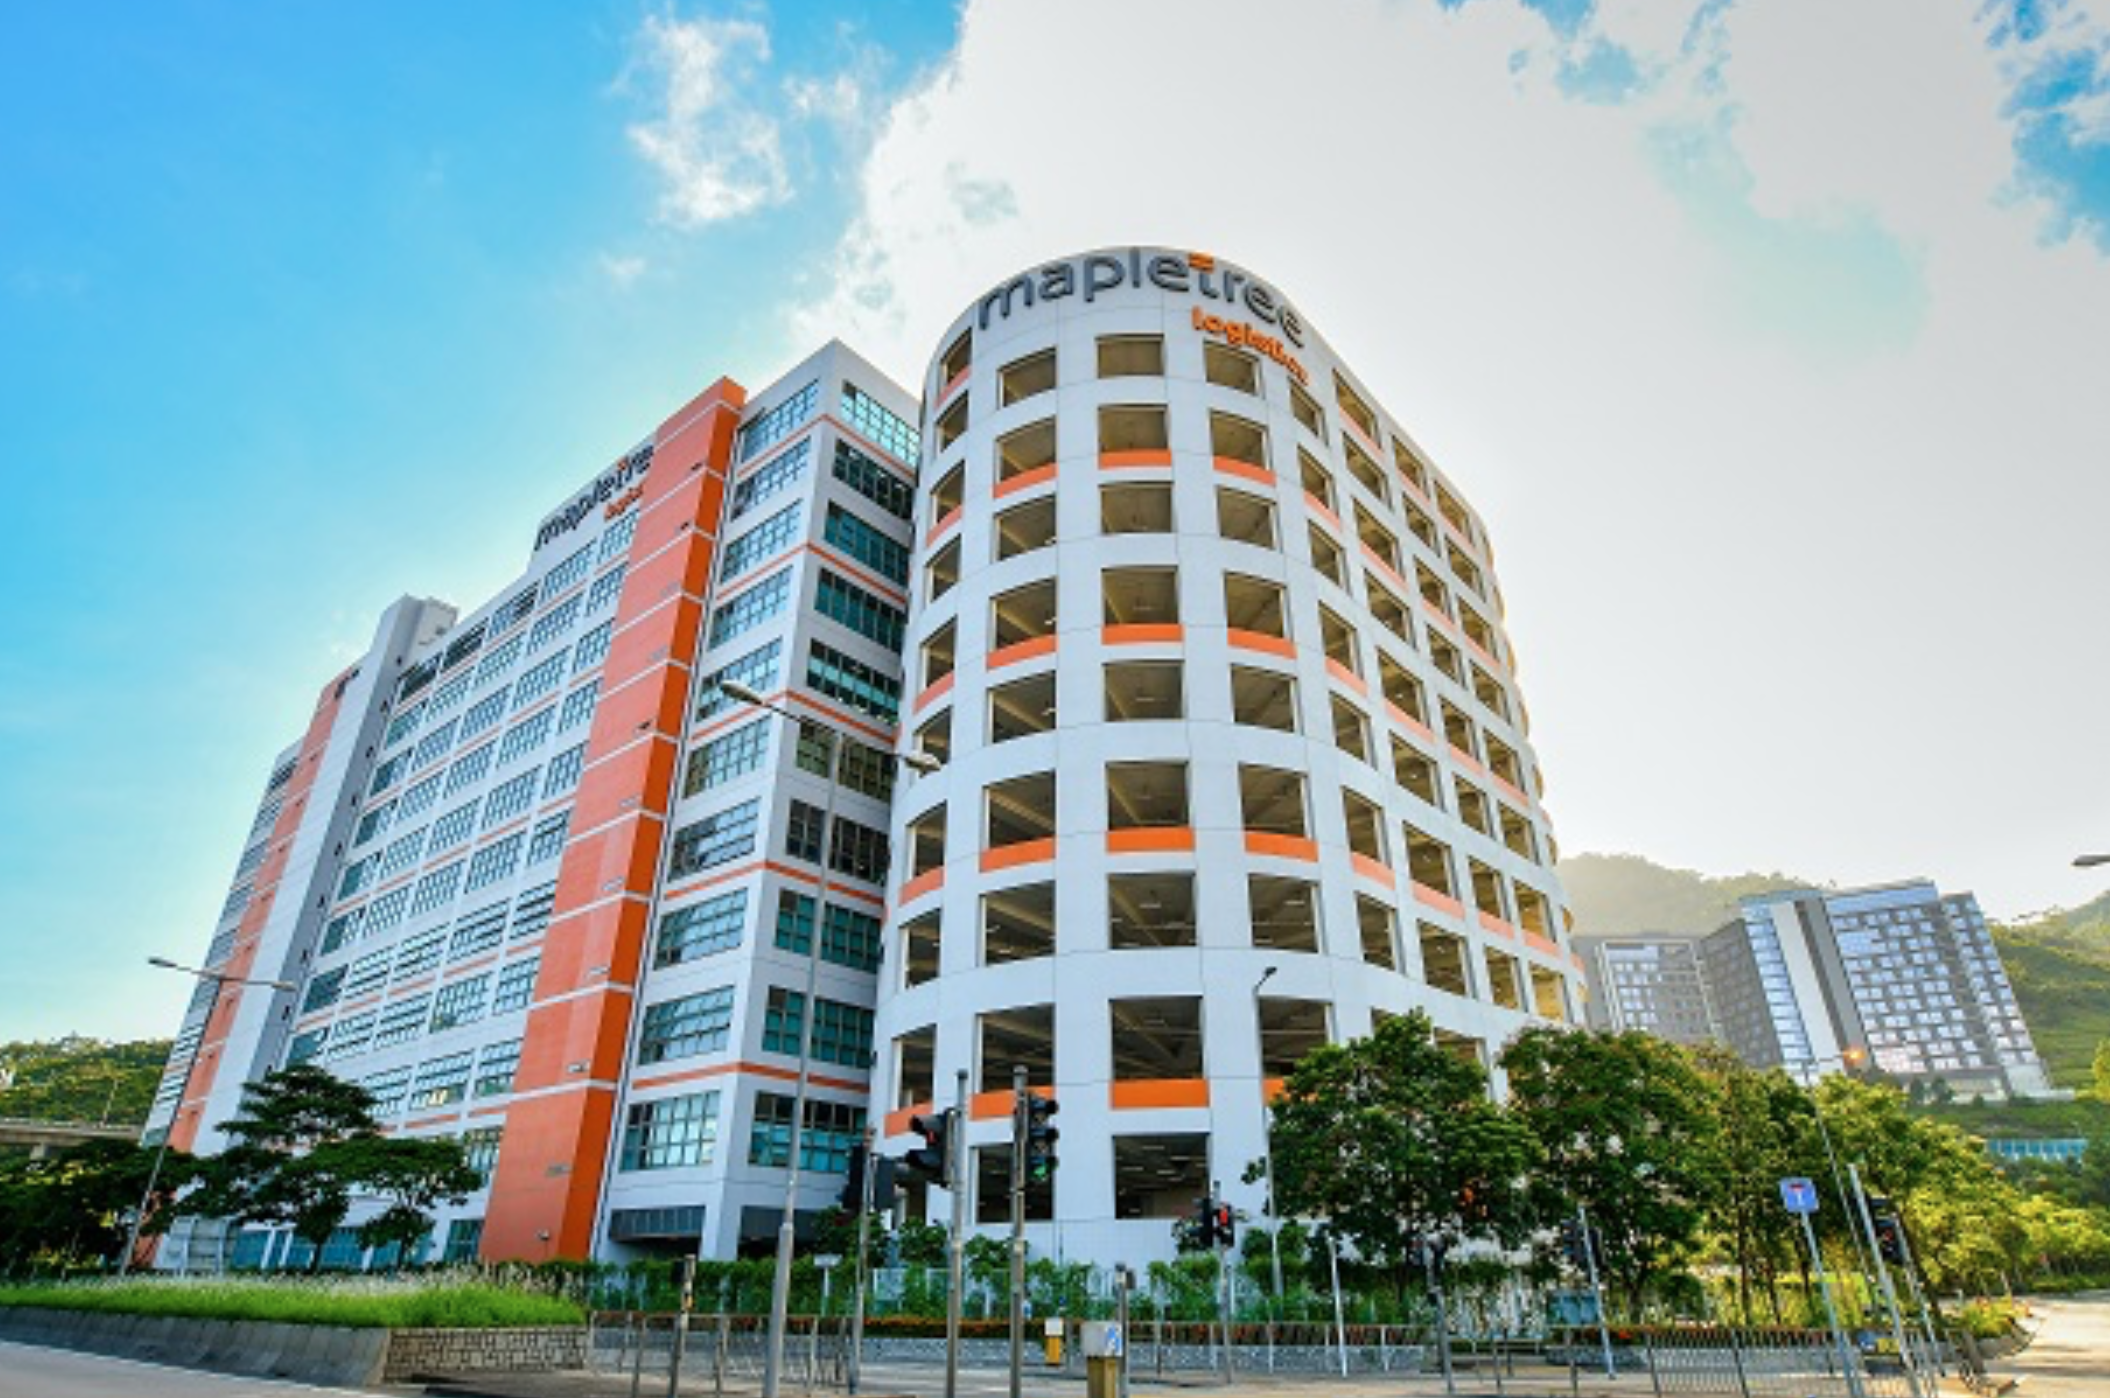 Mapletree Logistics Hub Tsing Yi, a property of Mapletree Logistics Trust in Hong Kong. (Photo: Mapletree Logistics Trust)